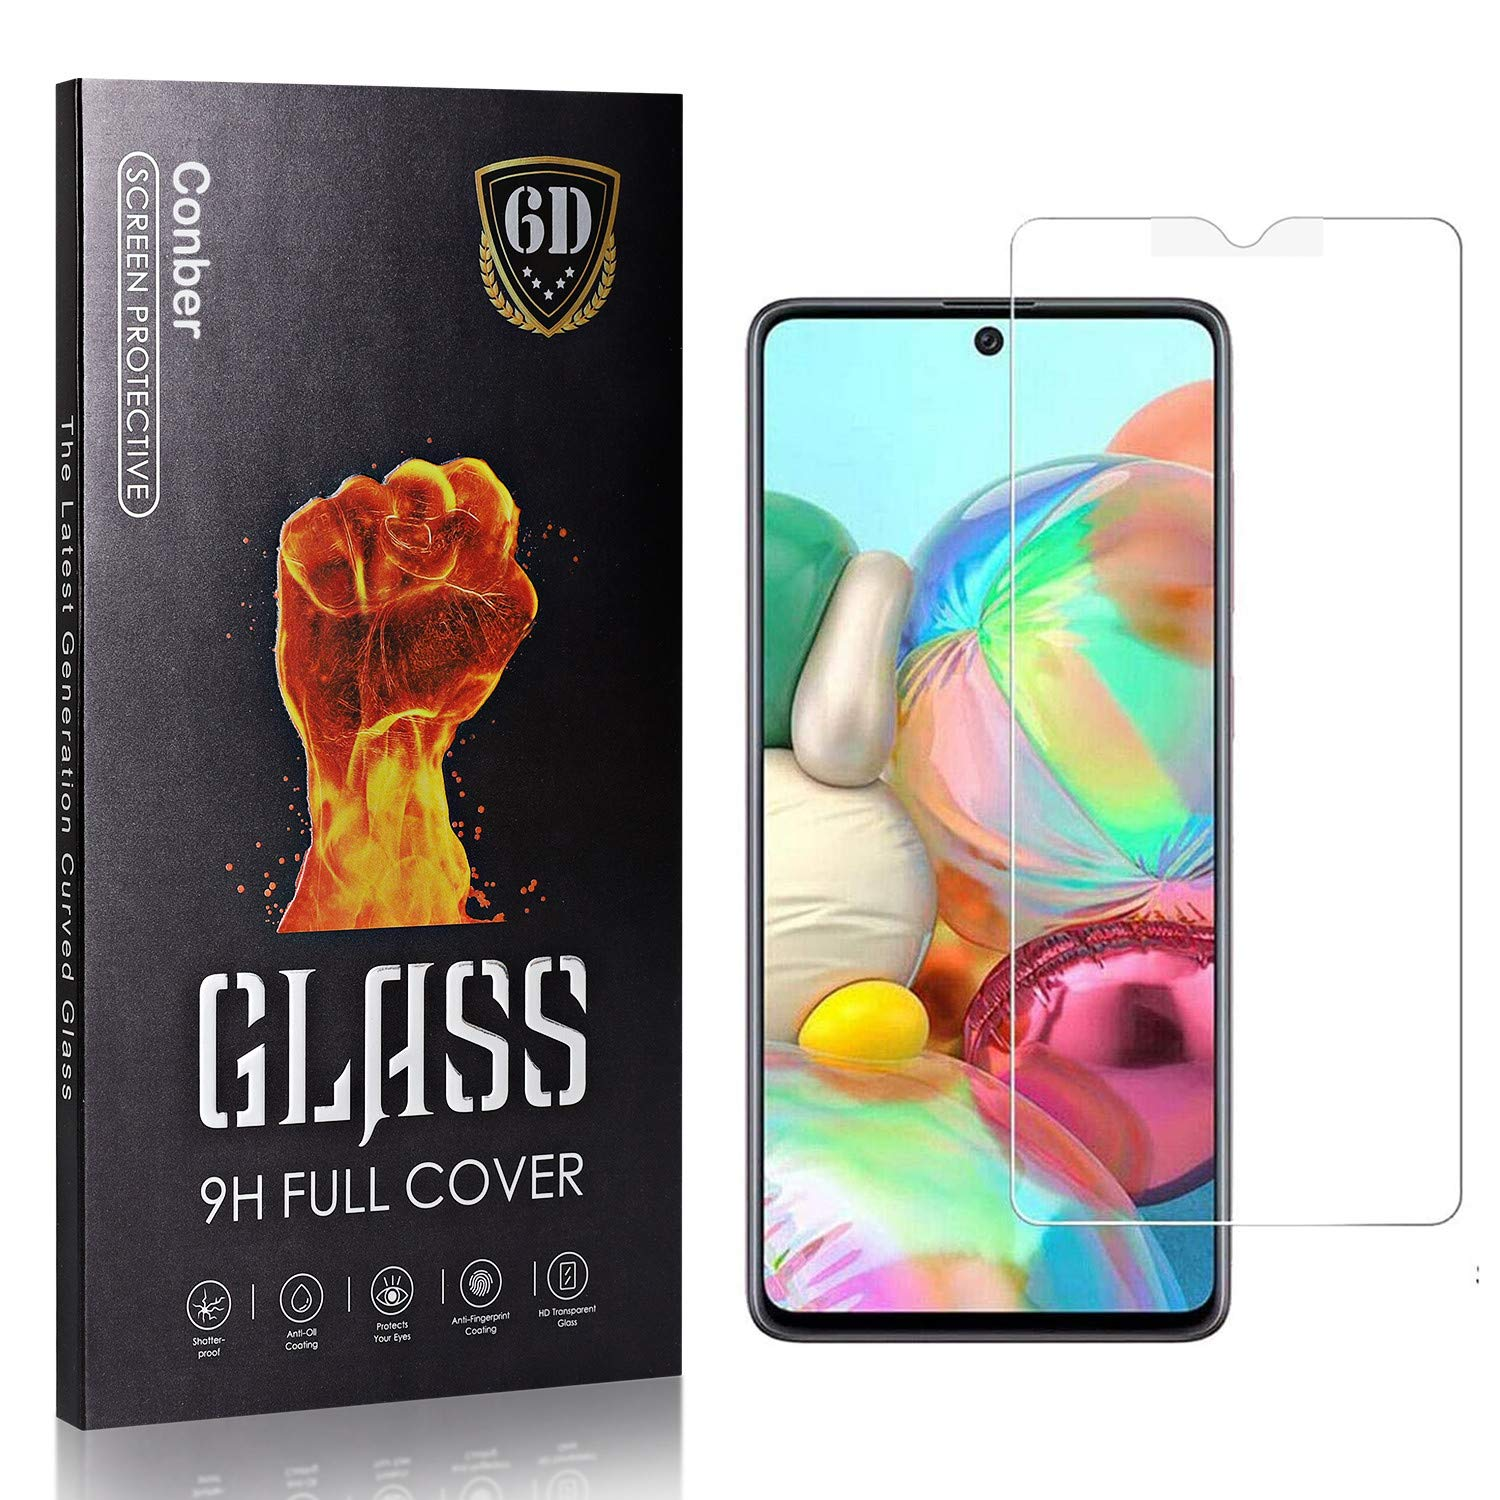 Conber 4 Pack Max 89% OFF Screen Protector for Galaxy Te S10 Be super welcome Lite Samsung